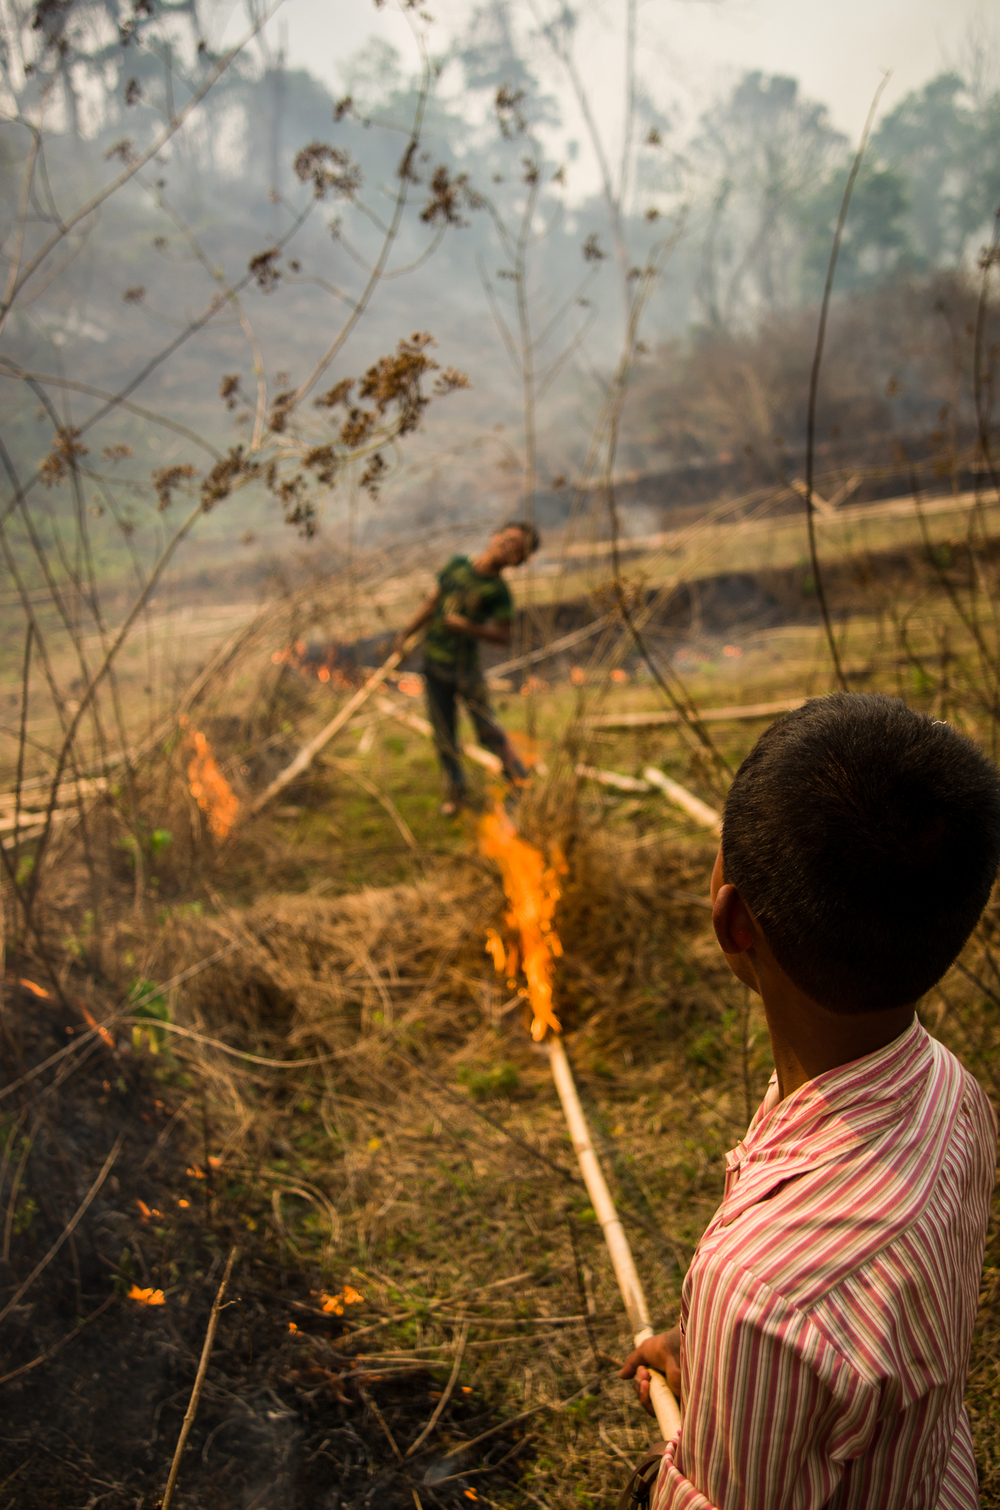 Most members of the Garo communities participate in the forest burnings.  Children oftentimes carry lit bamboo poles to spread the fire